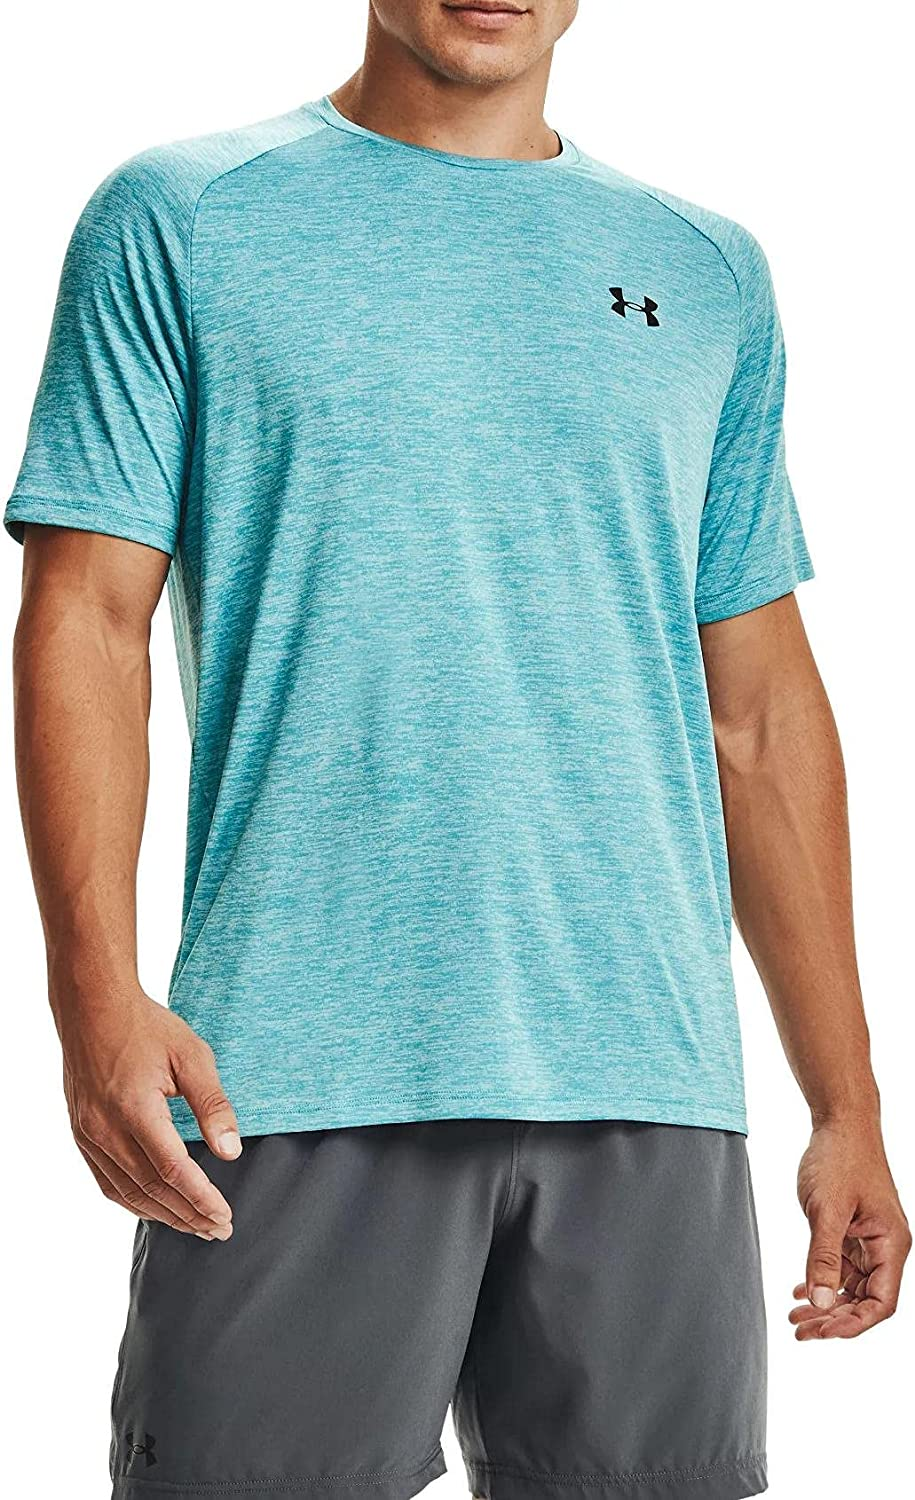 Under Armour Men's Tech 2.0 Short Sleeve Tee Cosmo/Black Large Tall